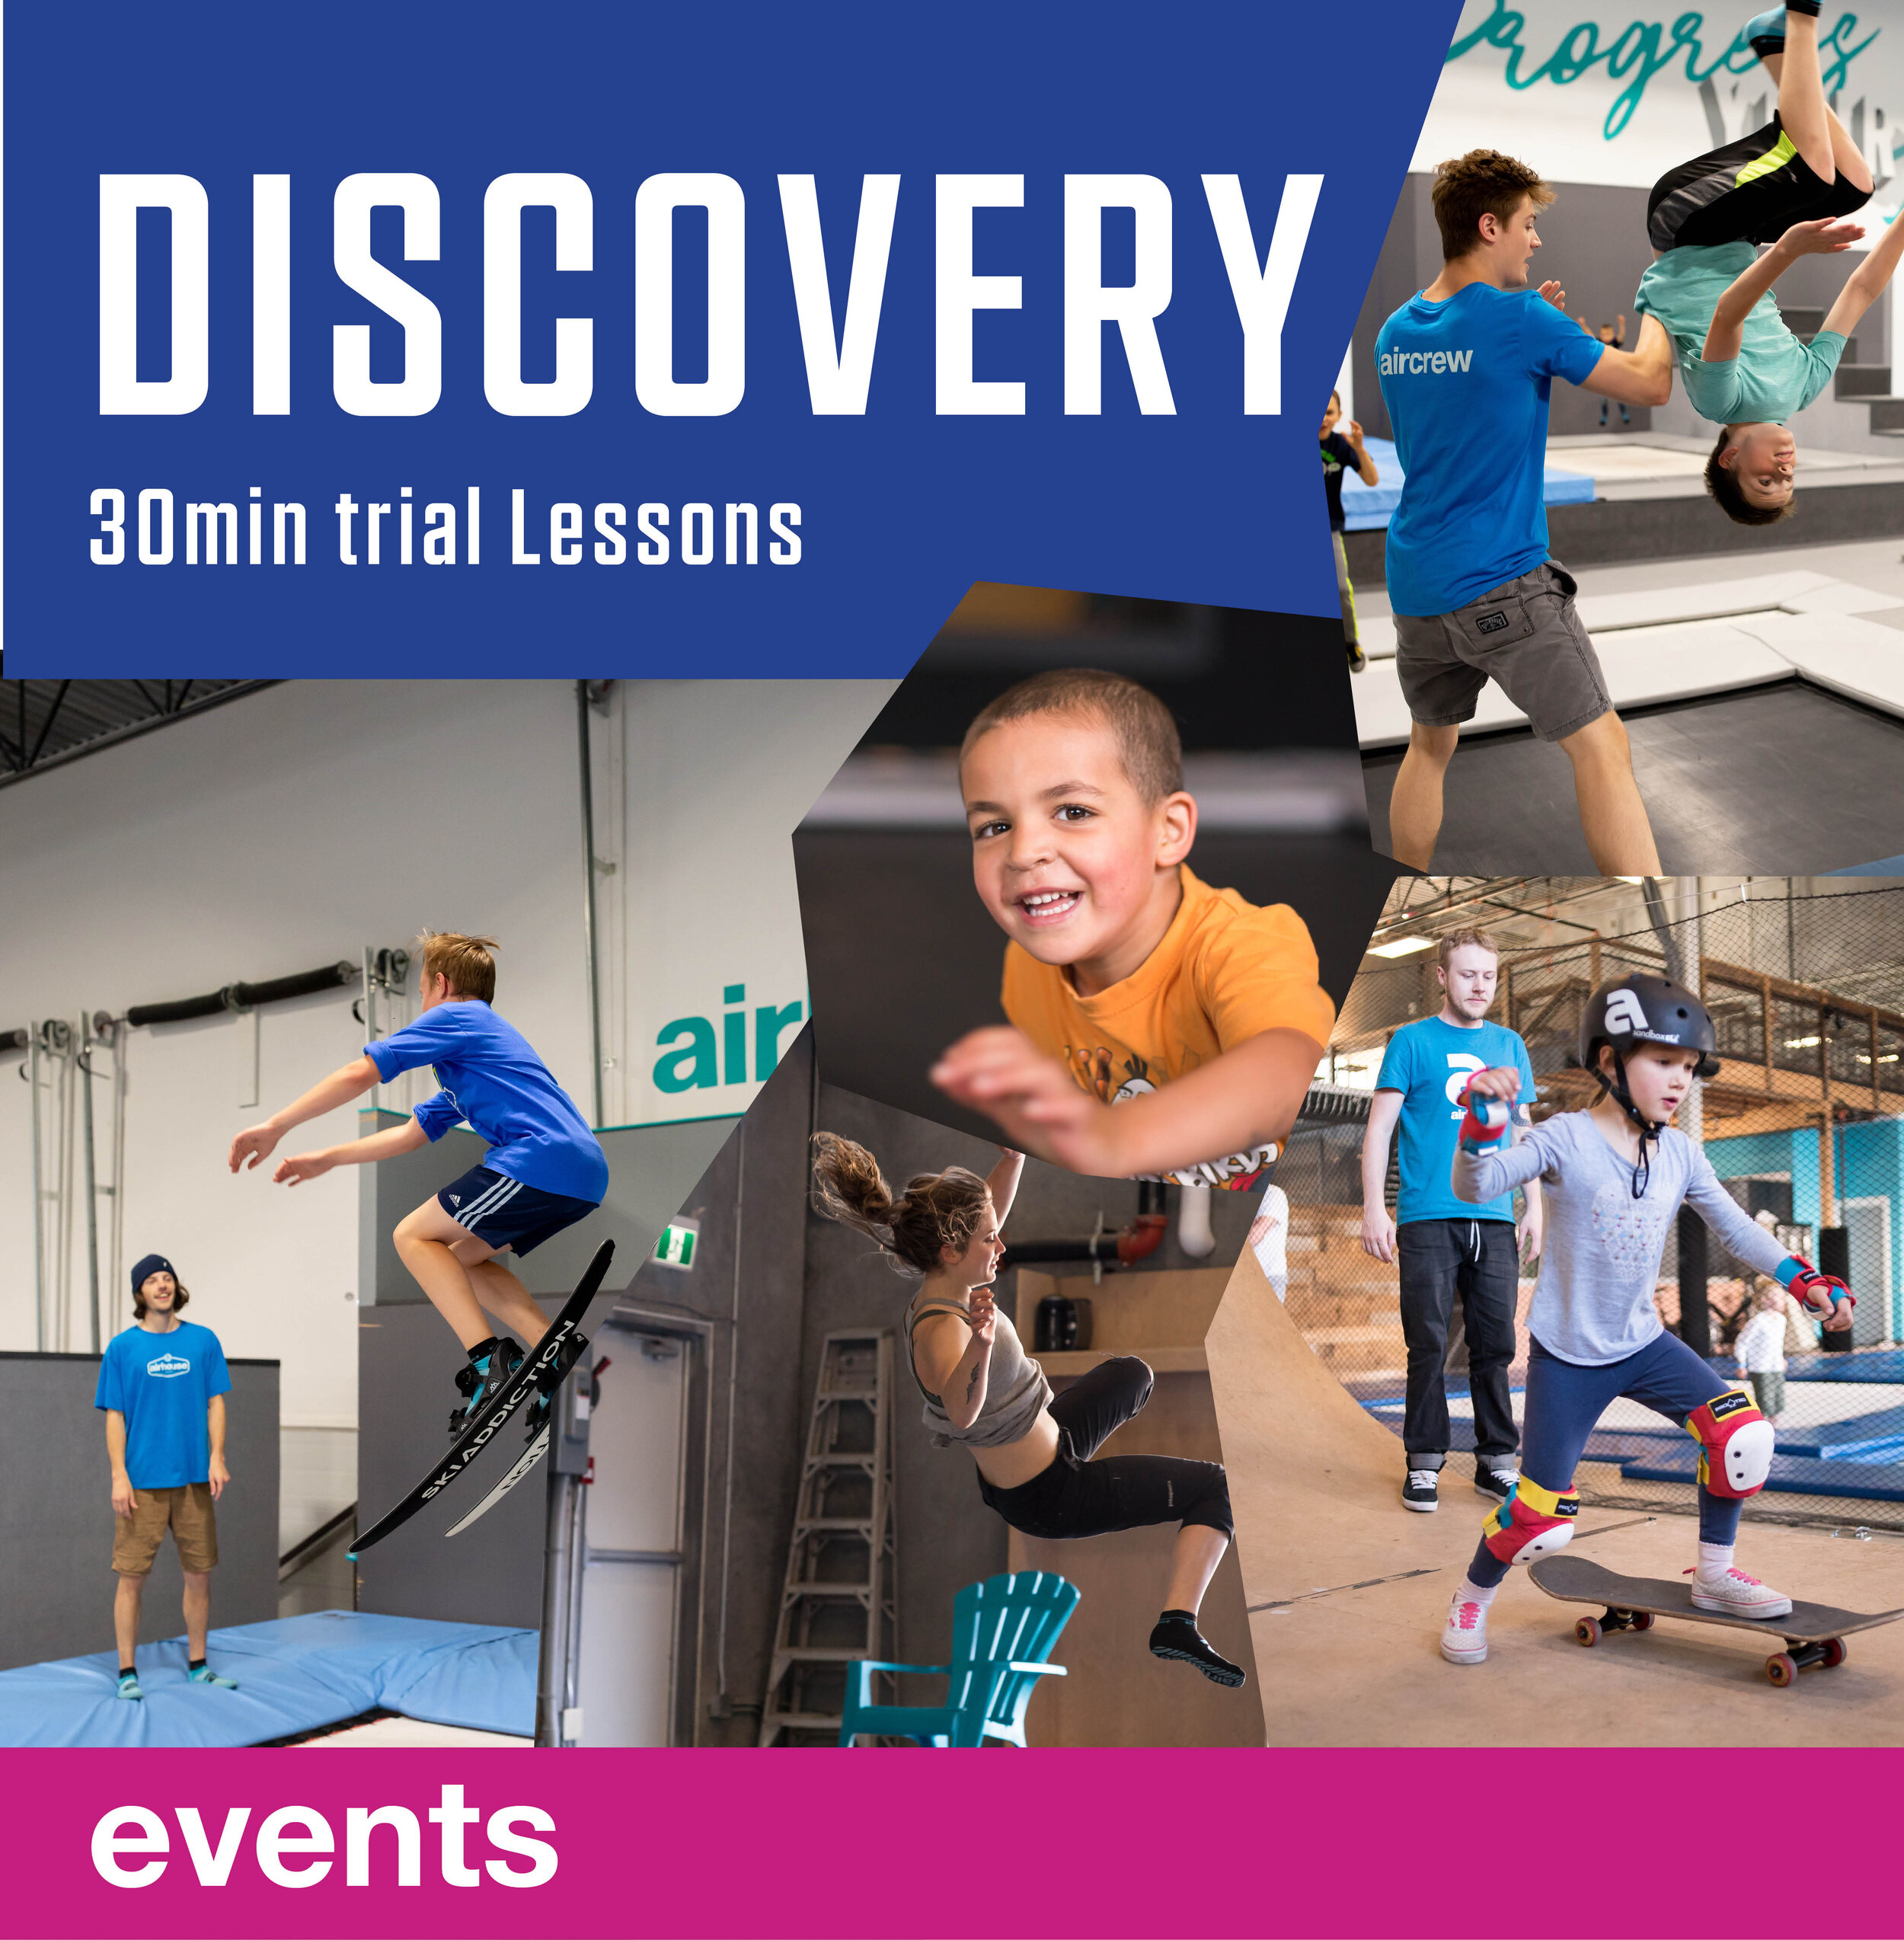 Discovery Lesson Event.jpg